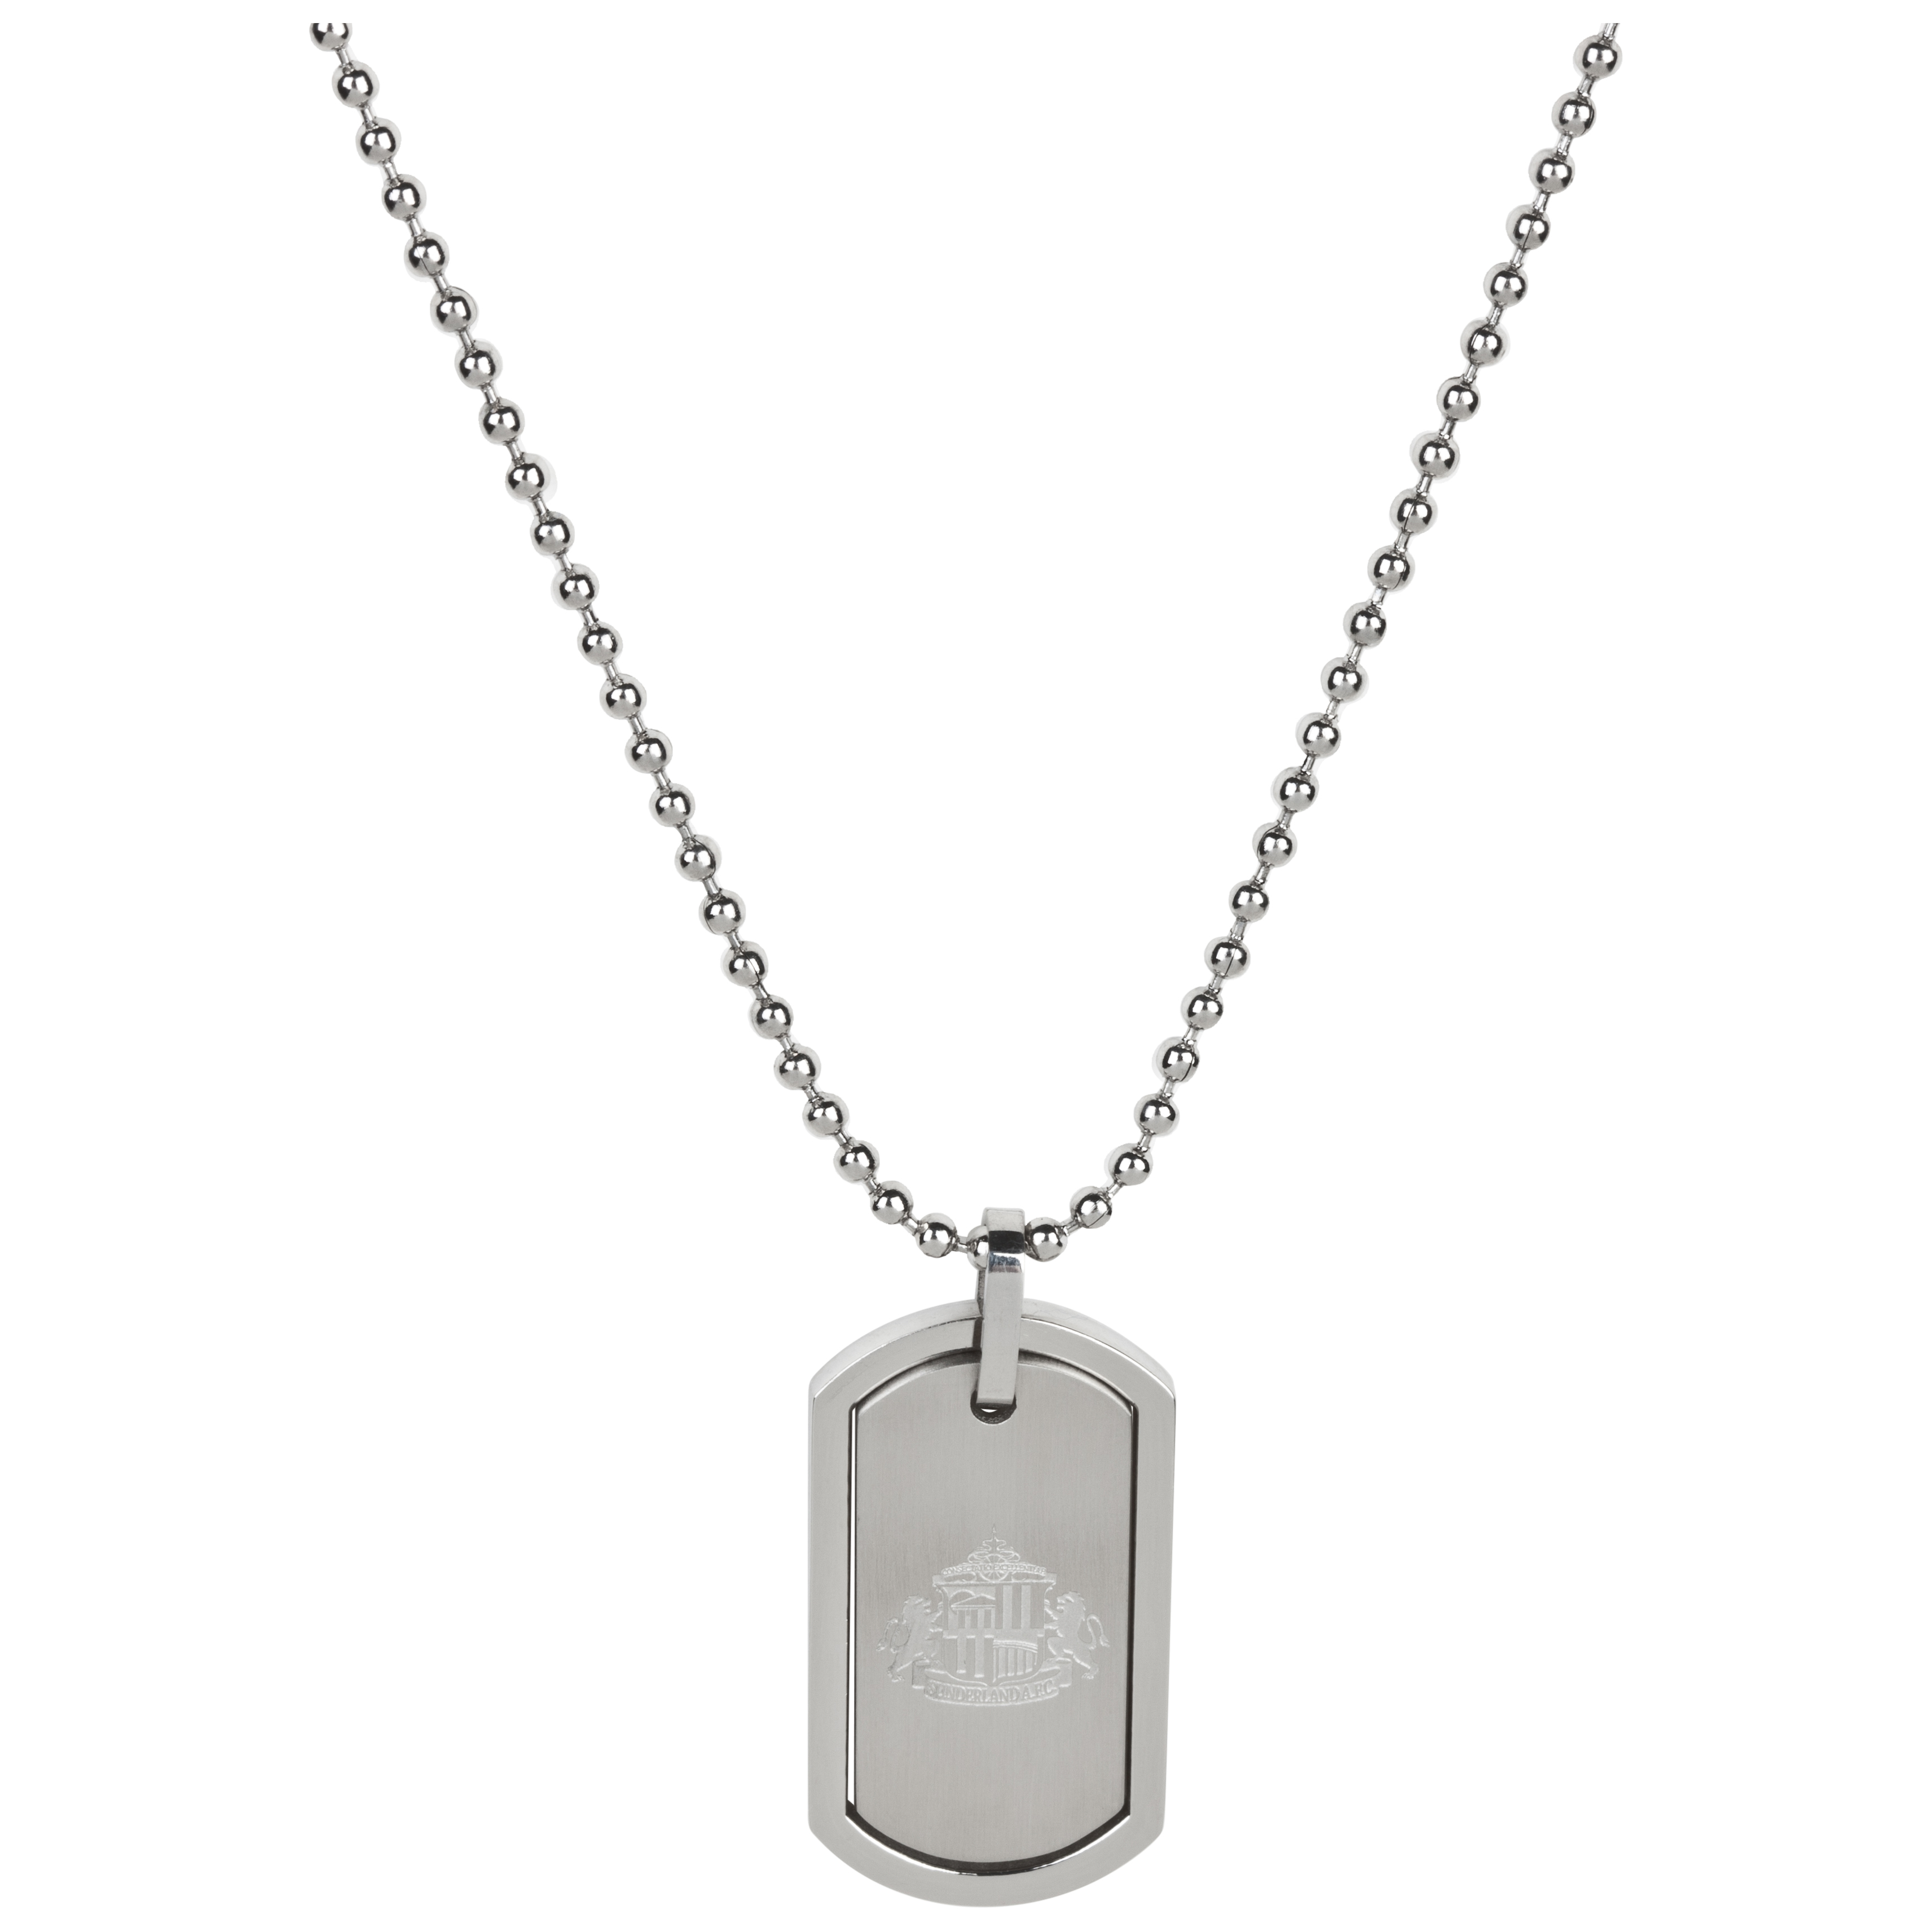 Sunderland Stainless Steel Double Dog Tag and Ball Chain